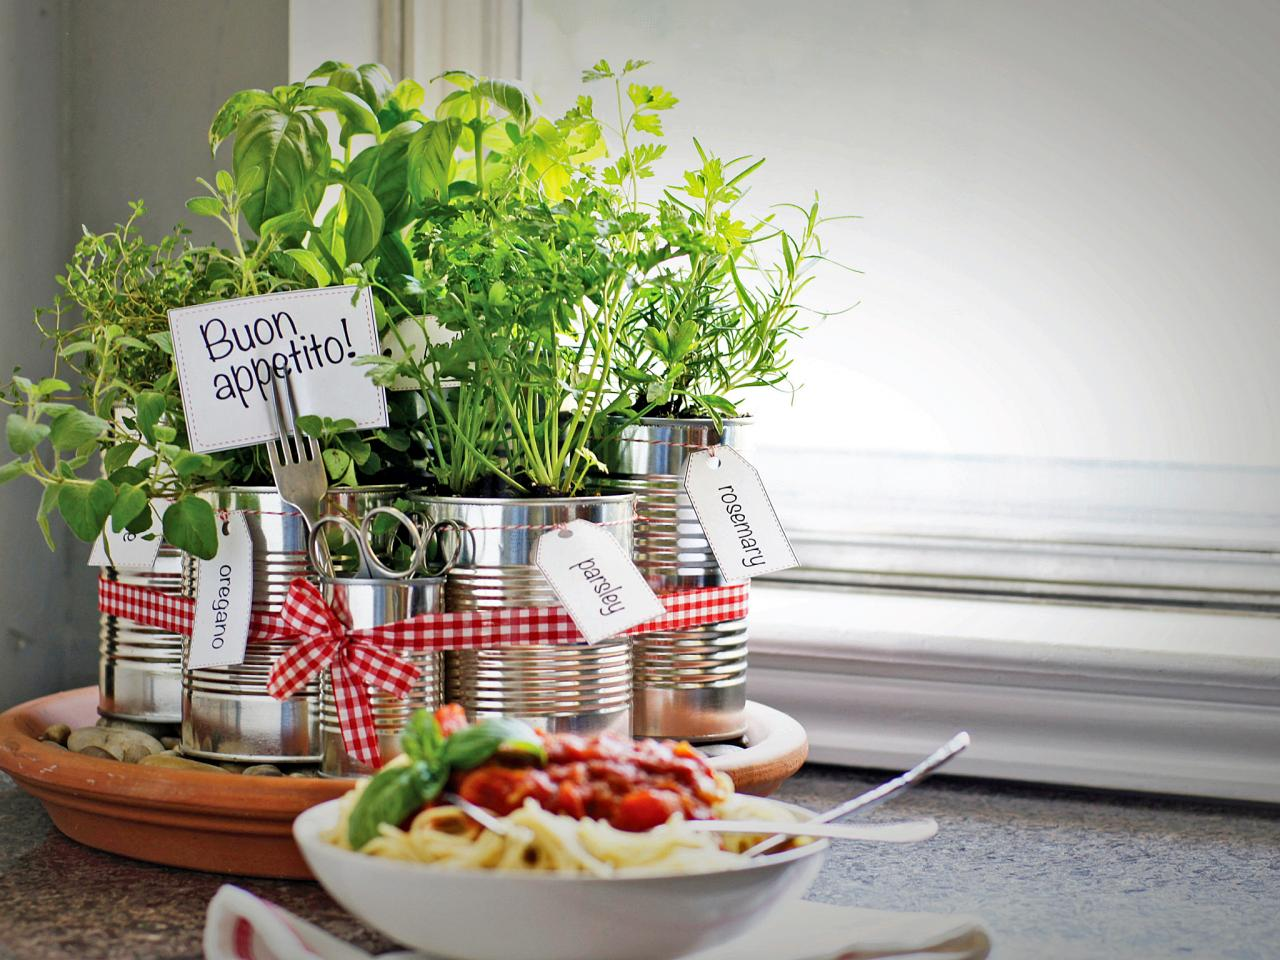 5 Indoor Herb Garden Ideas | HGTV\'s Decorating & Design Blog | HGTV